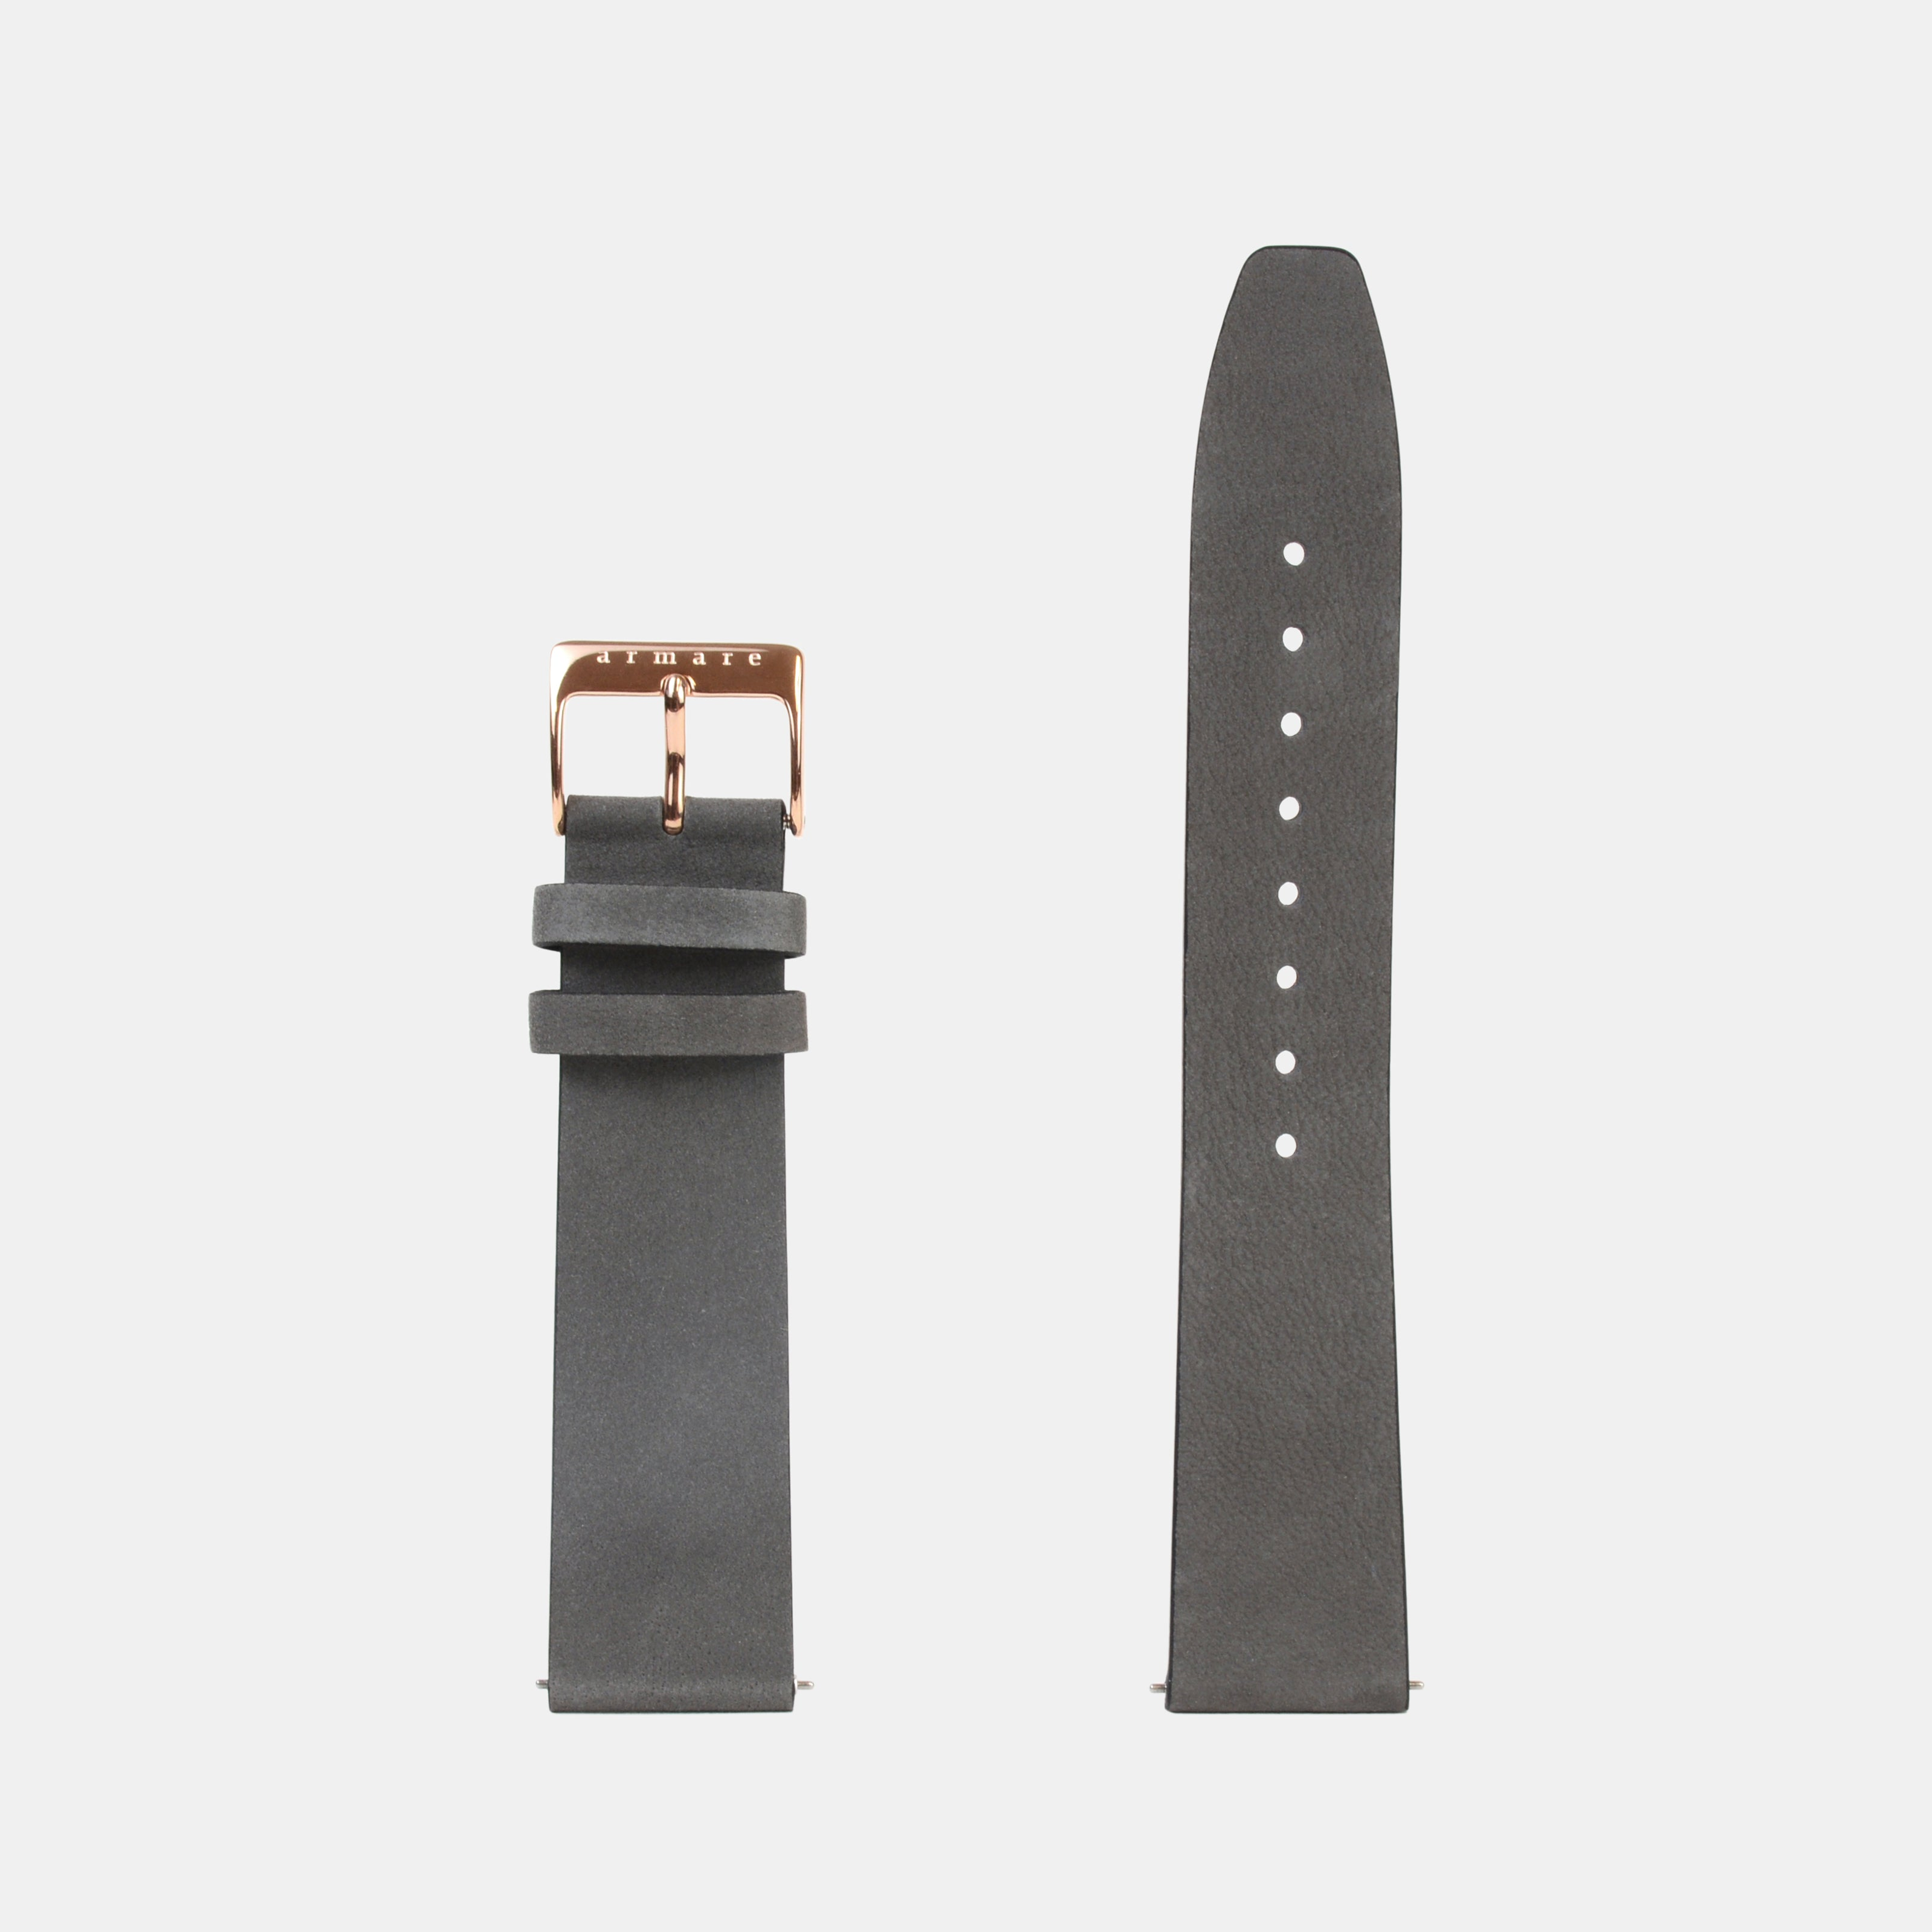 armare-watches-grigio-scuro-leather-watchband-rosegold